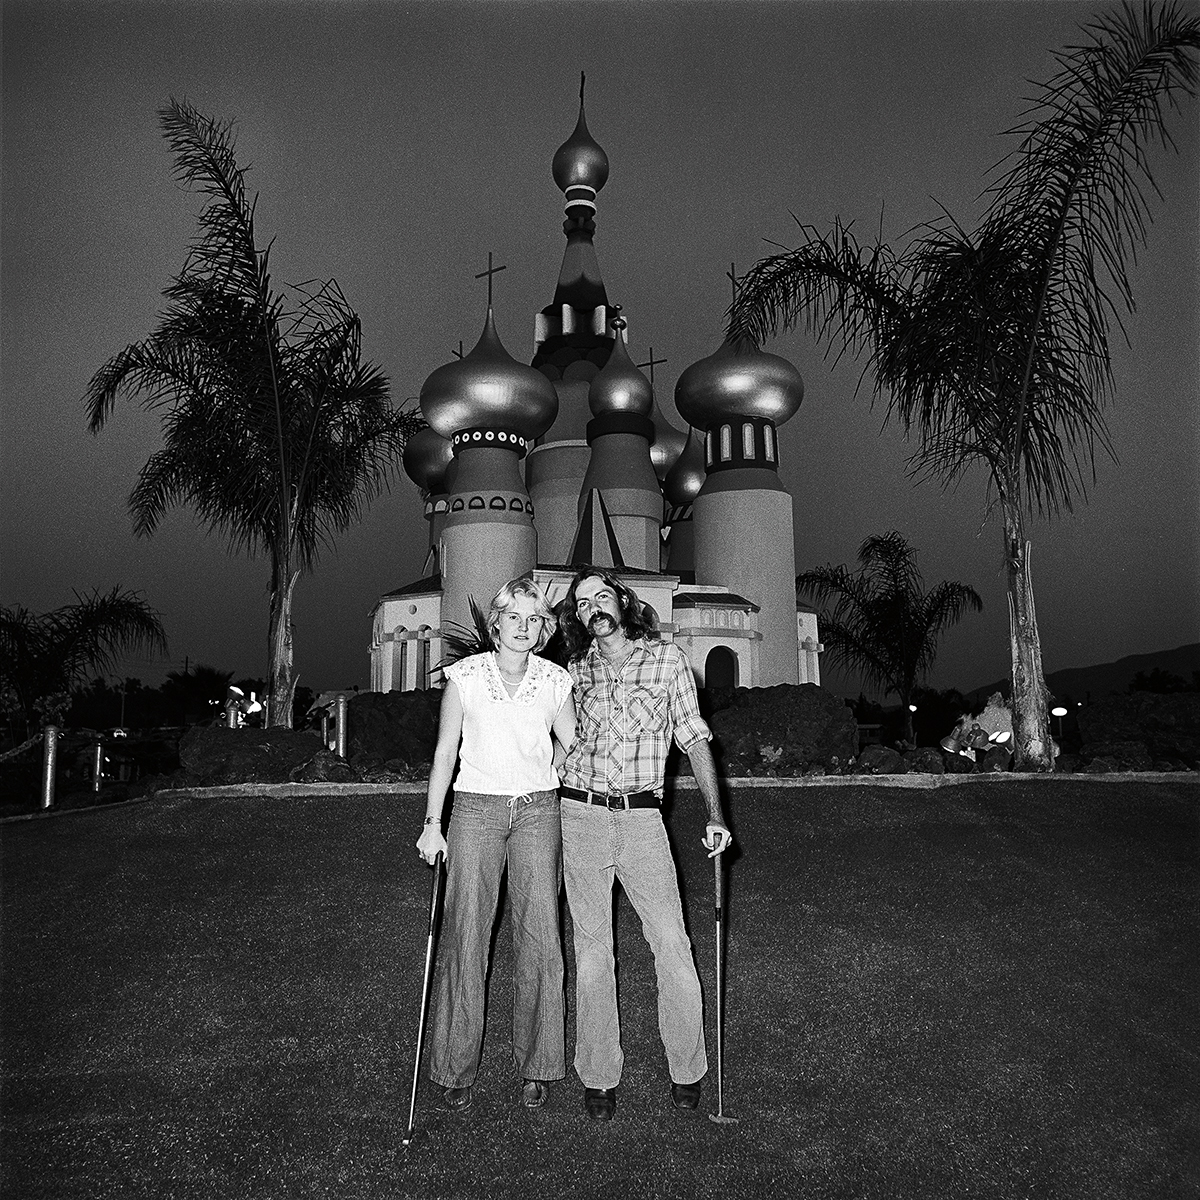 Couple at Minature Golf, 1976